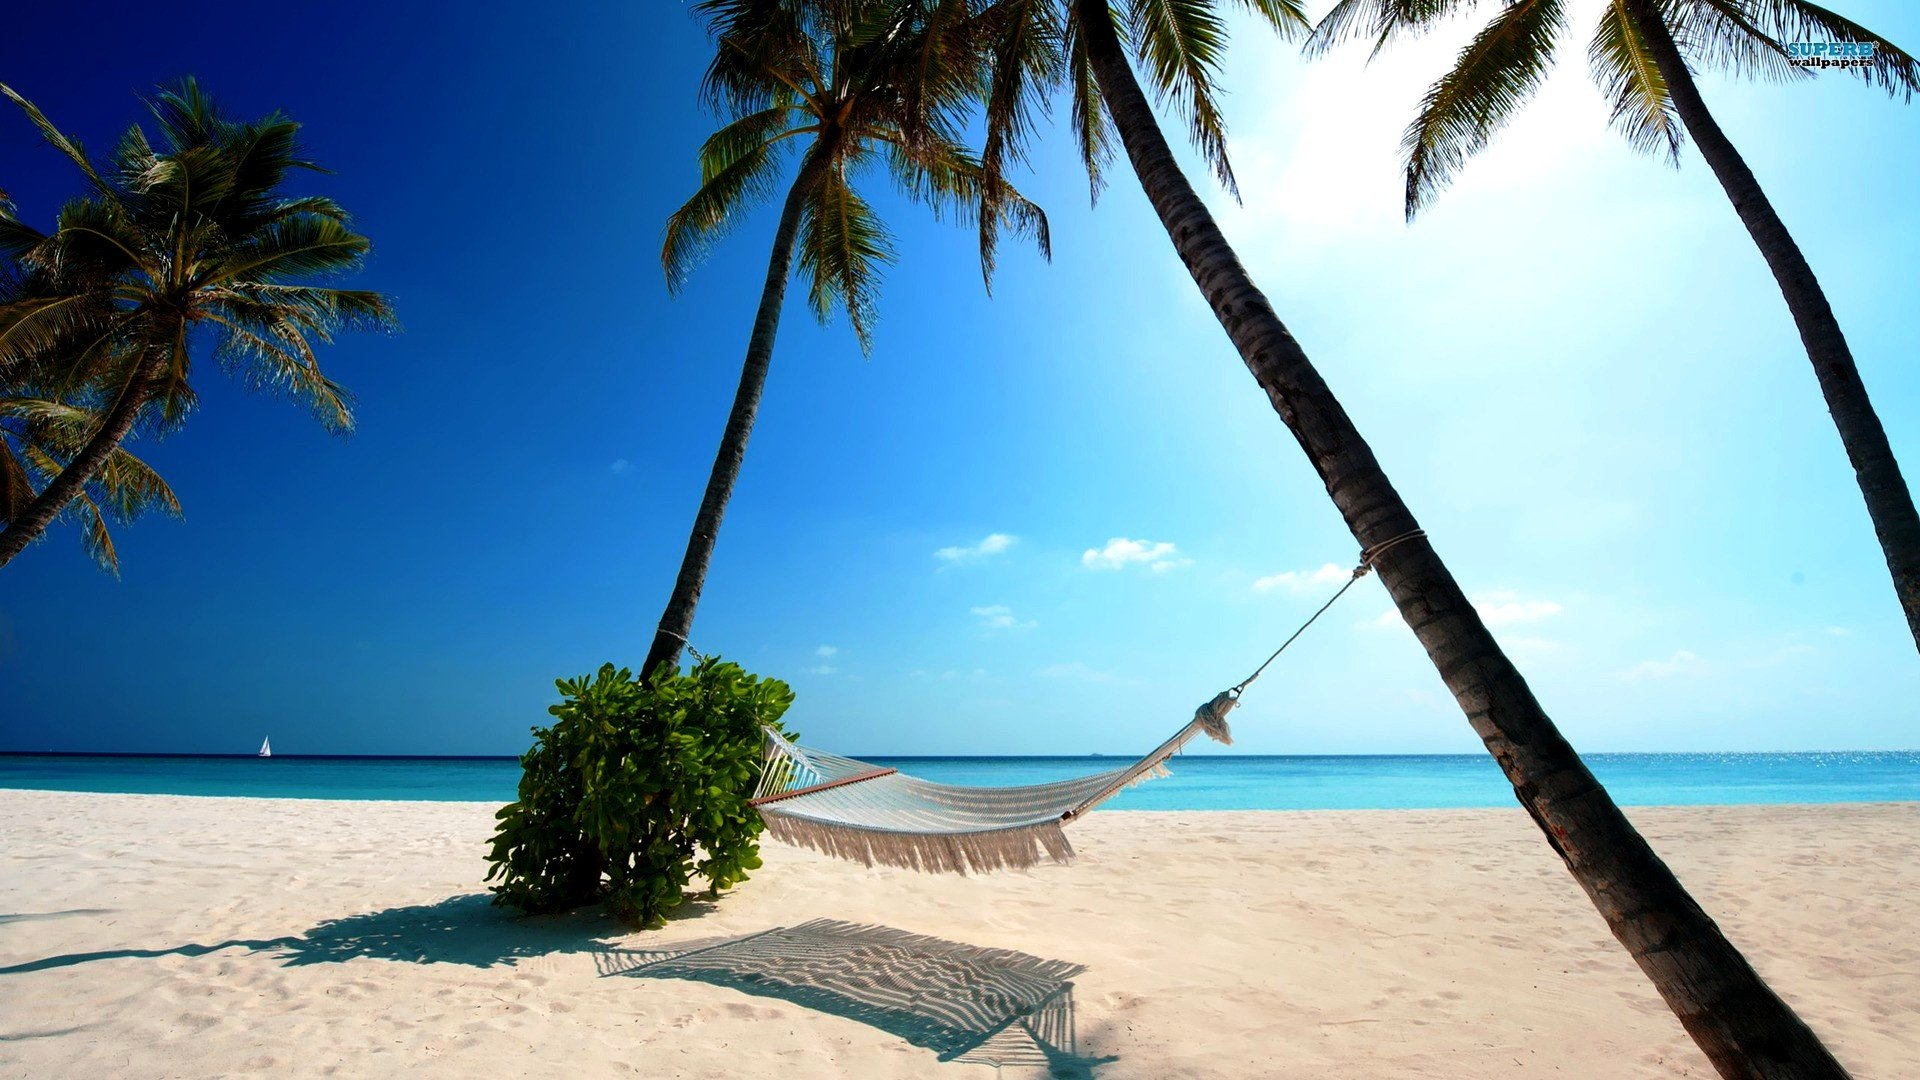 Holiday Wallpapers For Desktop And Be Happy Beach by 1920x1080